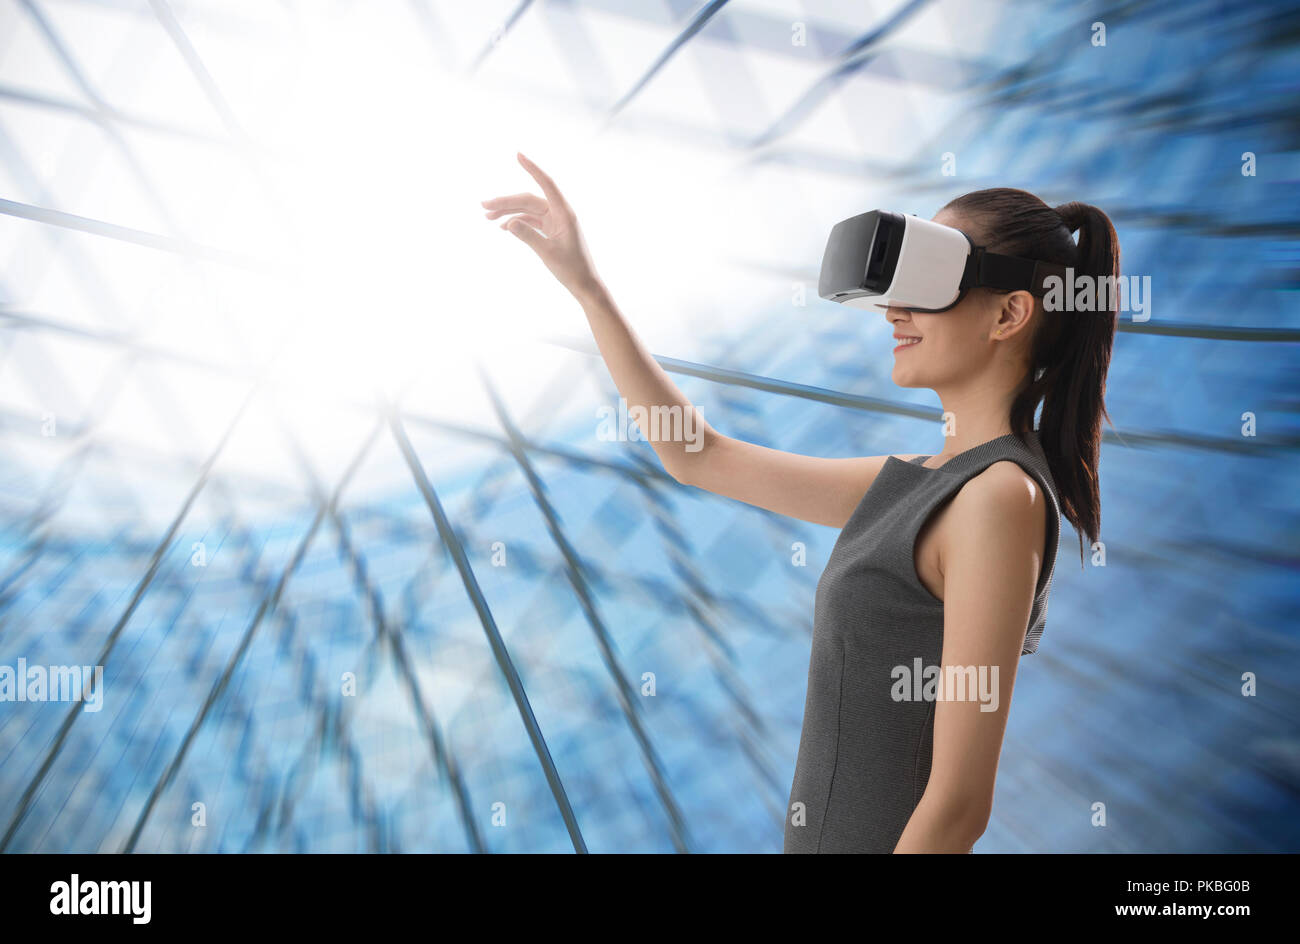 VR glasses young woman - Stock Image